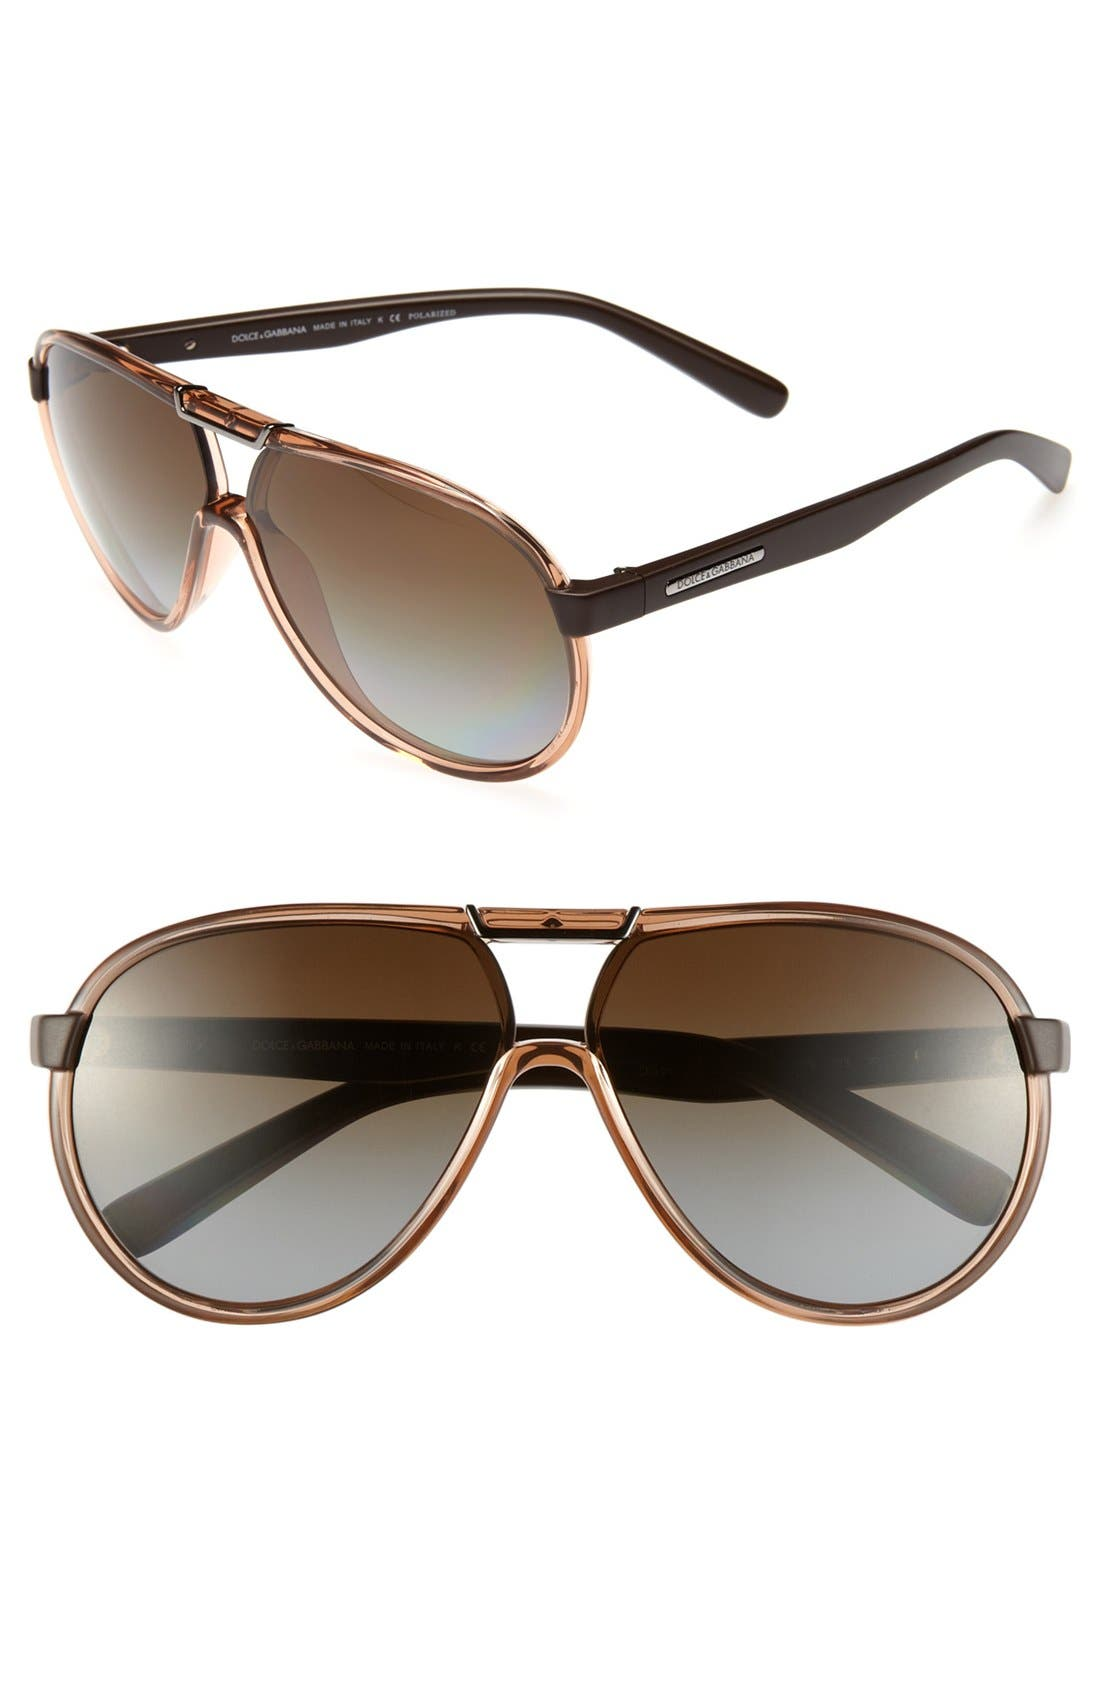 Alternate Image 1 Selected - Dolce&Gabbana 63mm Polarized Brow Bar Sunglasses